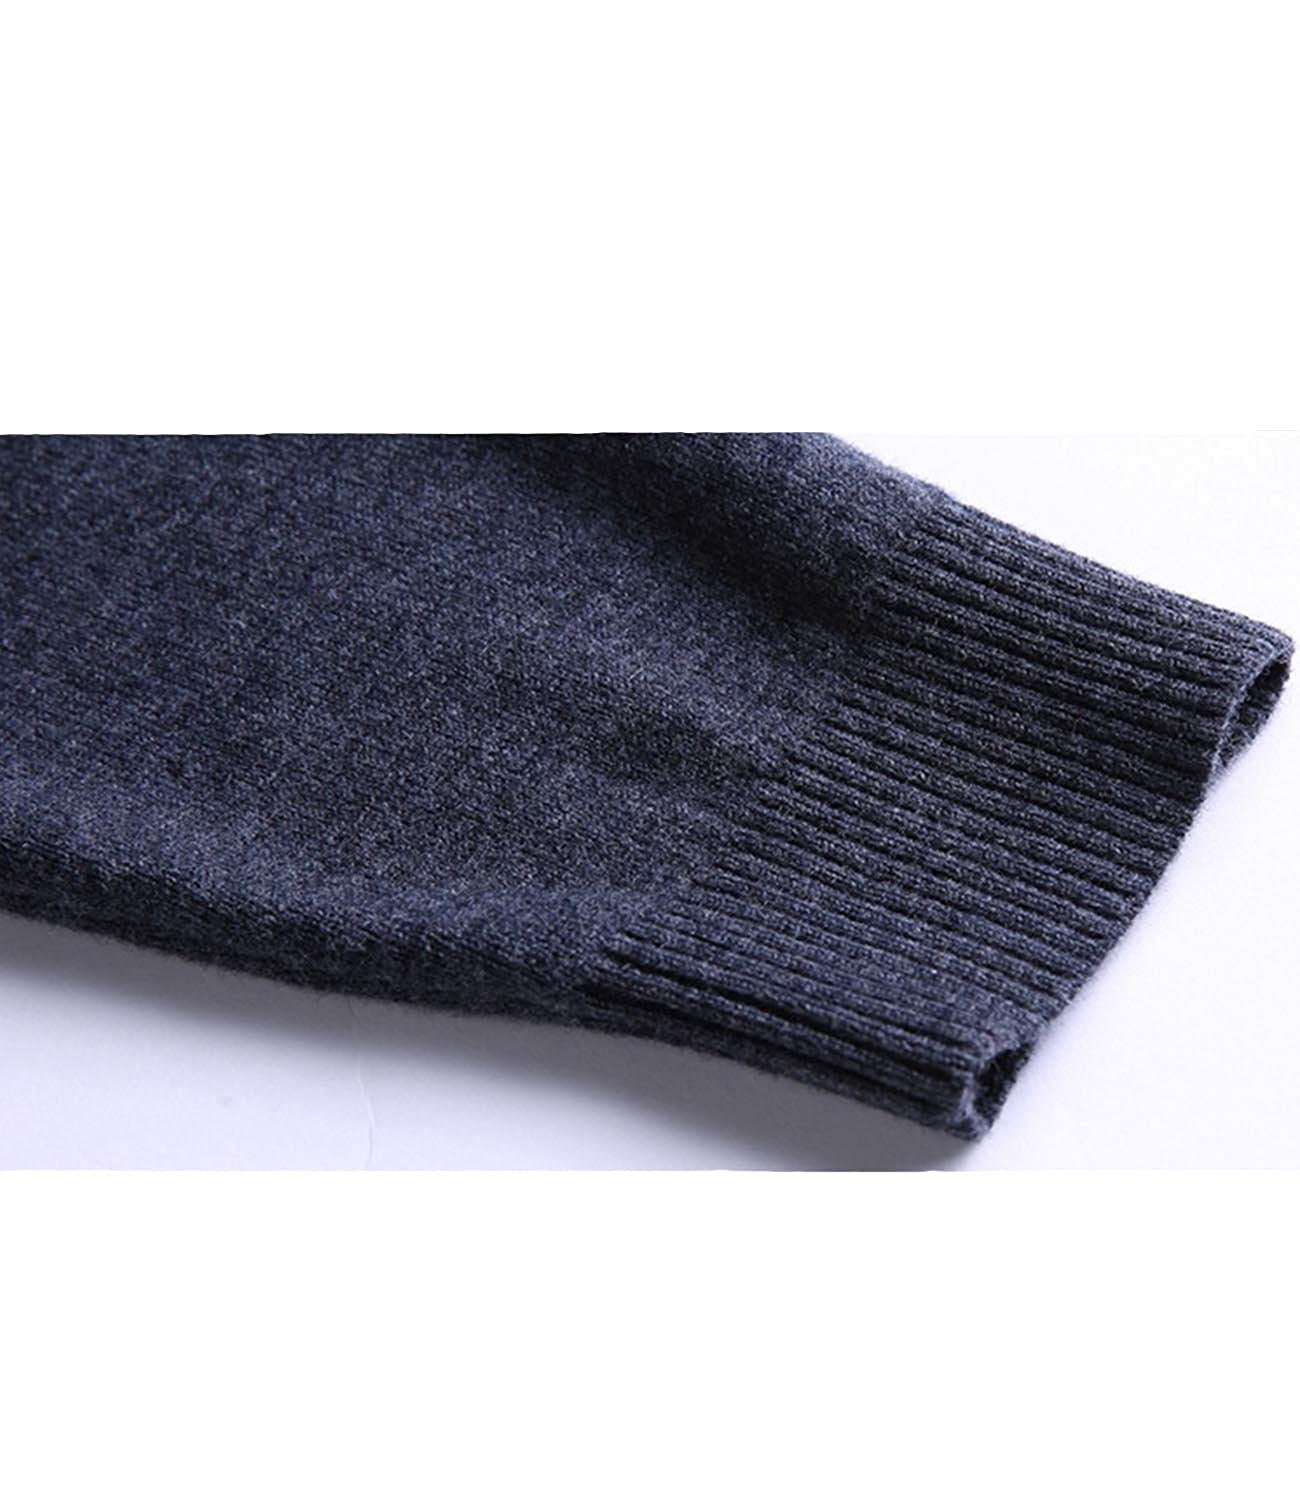 Nidicus Men Slim Fit Knitted Casual Basic Turtleneck Warm Pullover Sweater